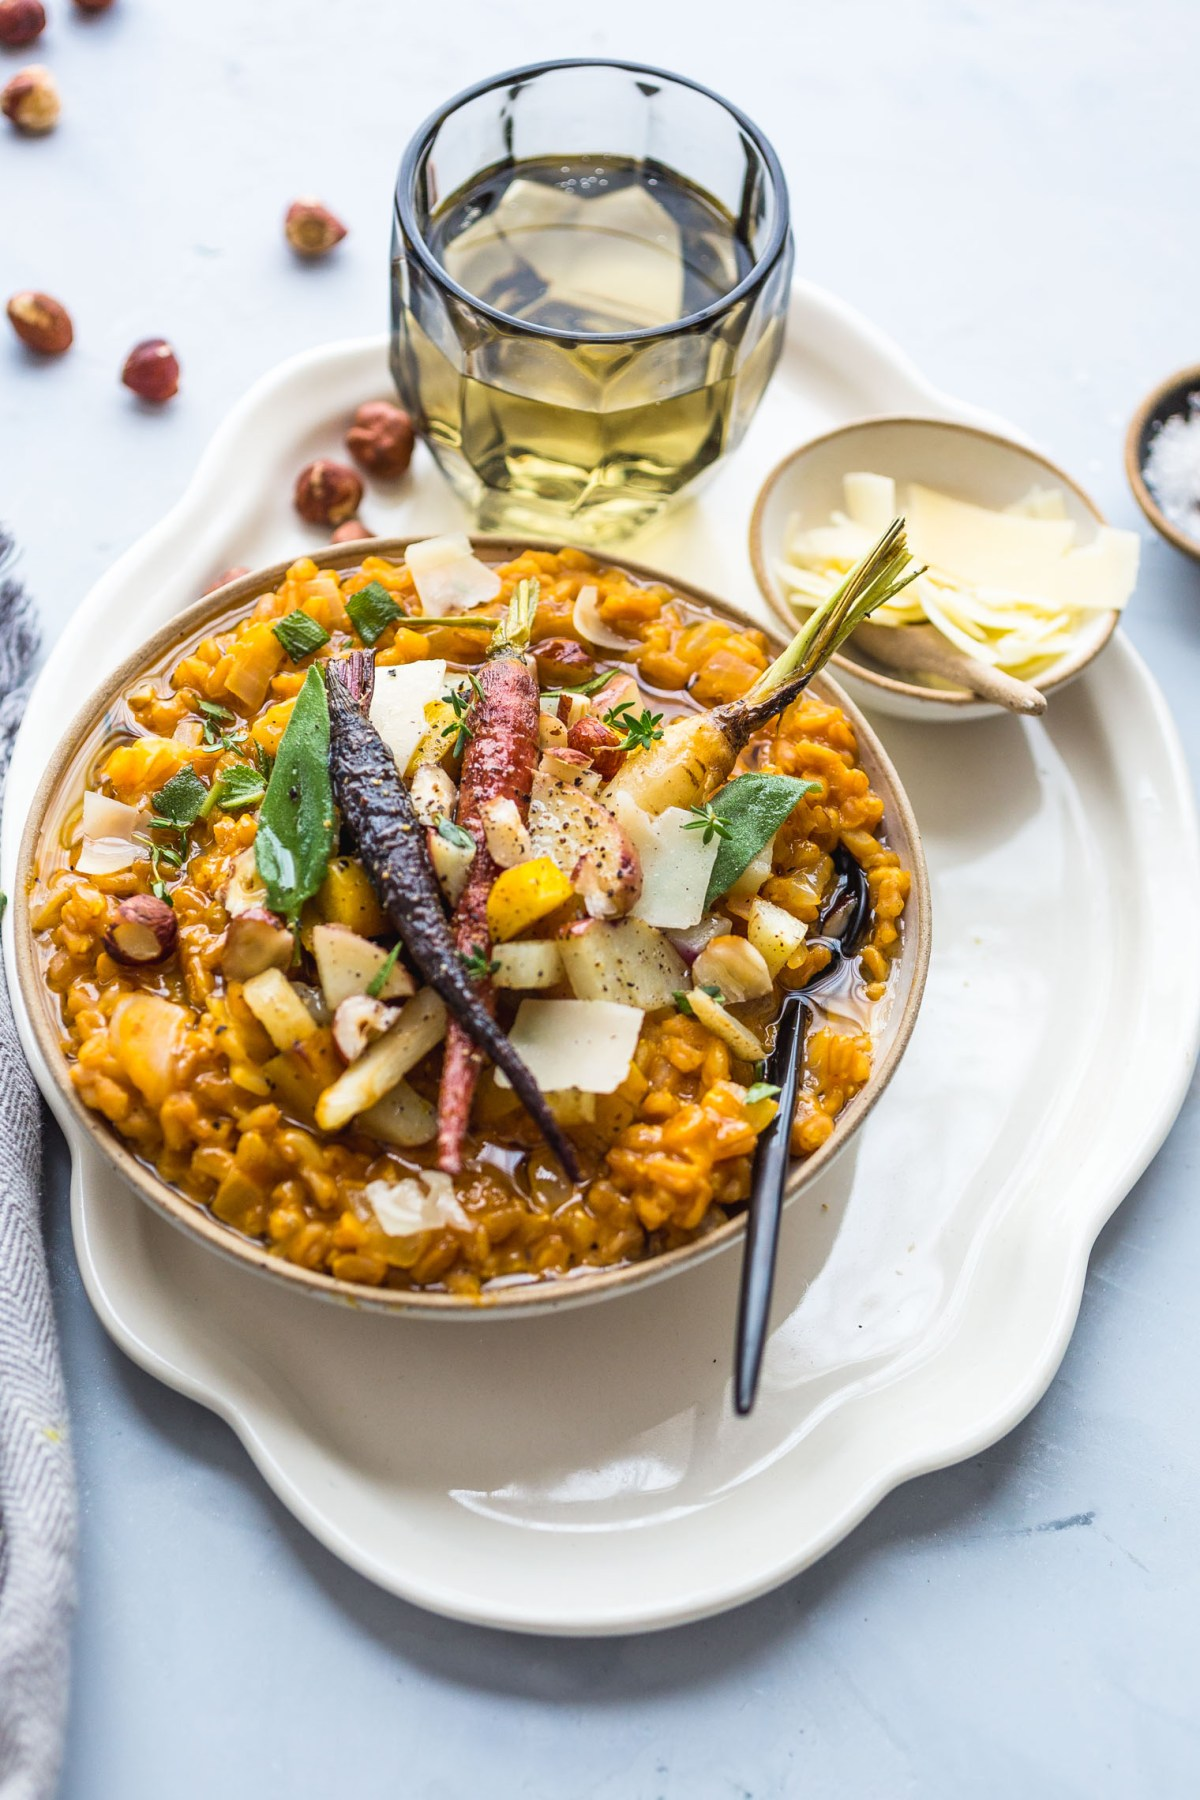 Pumpkin Farro Risotto with Roasted Winter Vegetables